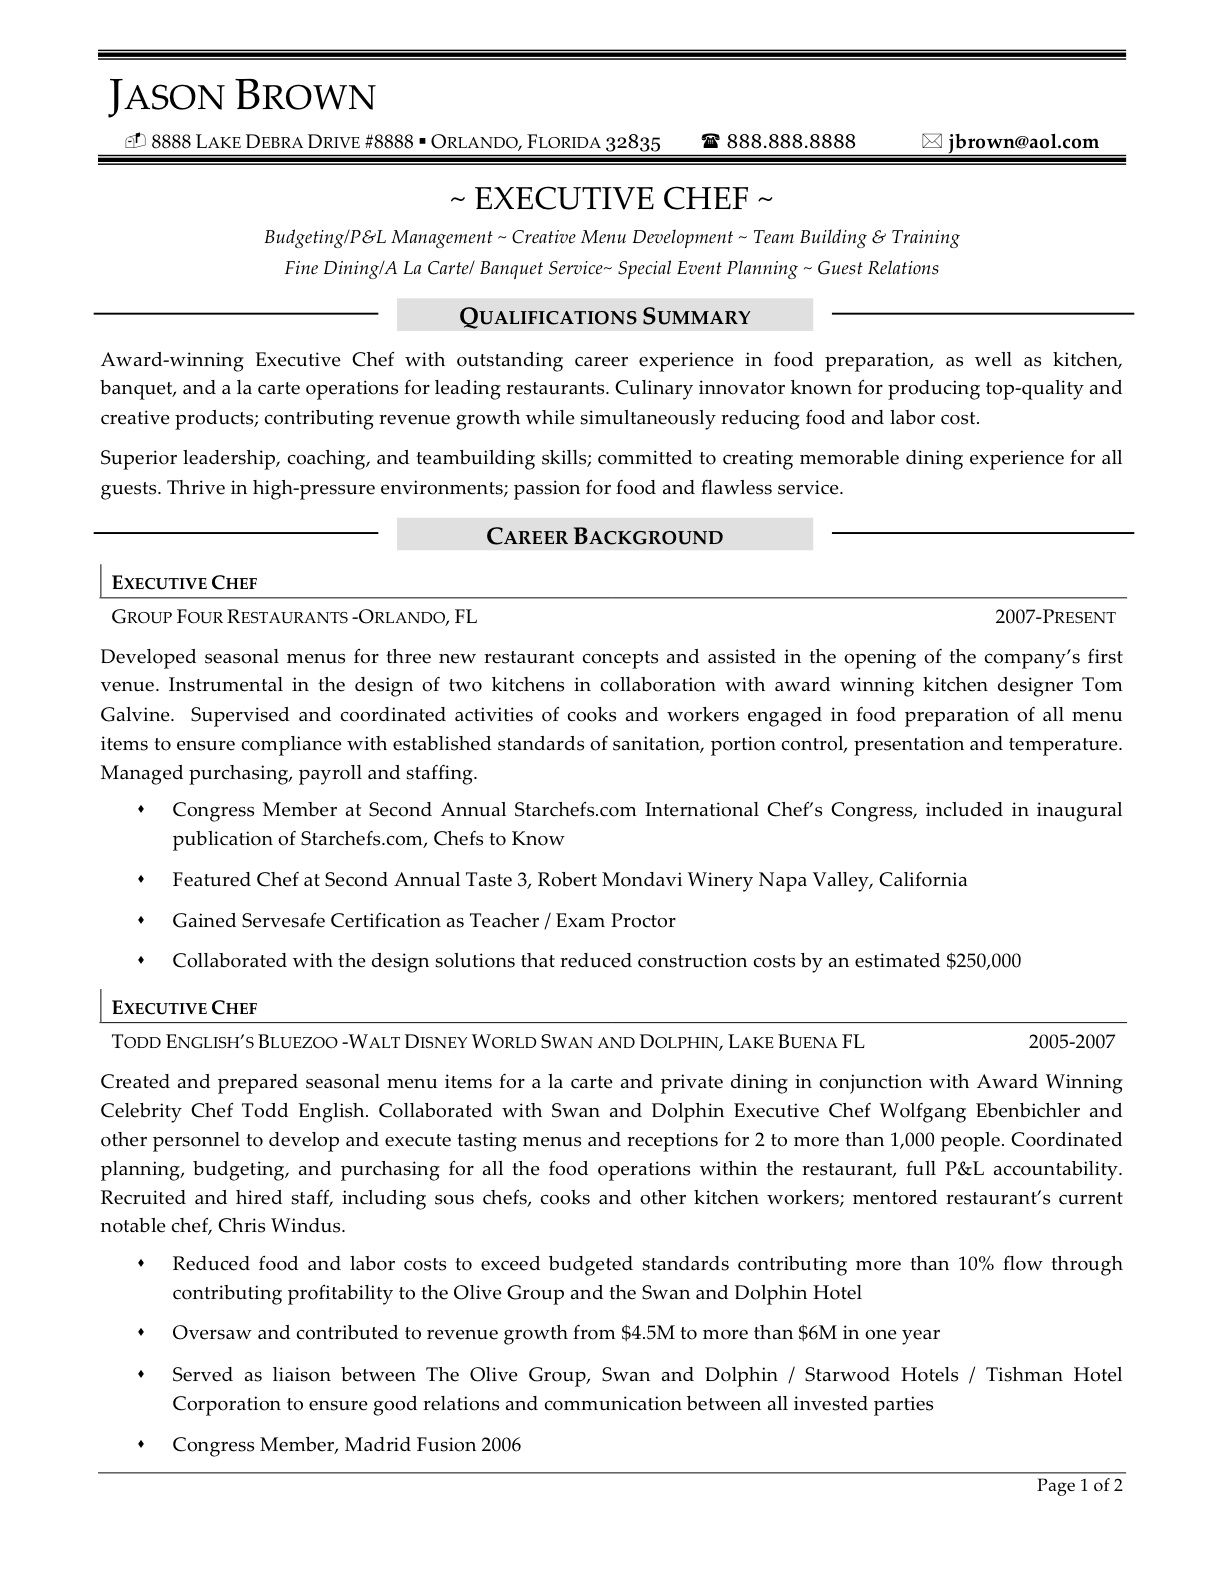 Executive Chef Resume Sample Resume Samples Pinterest Sample